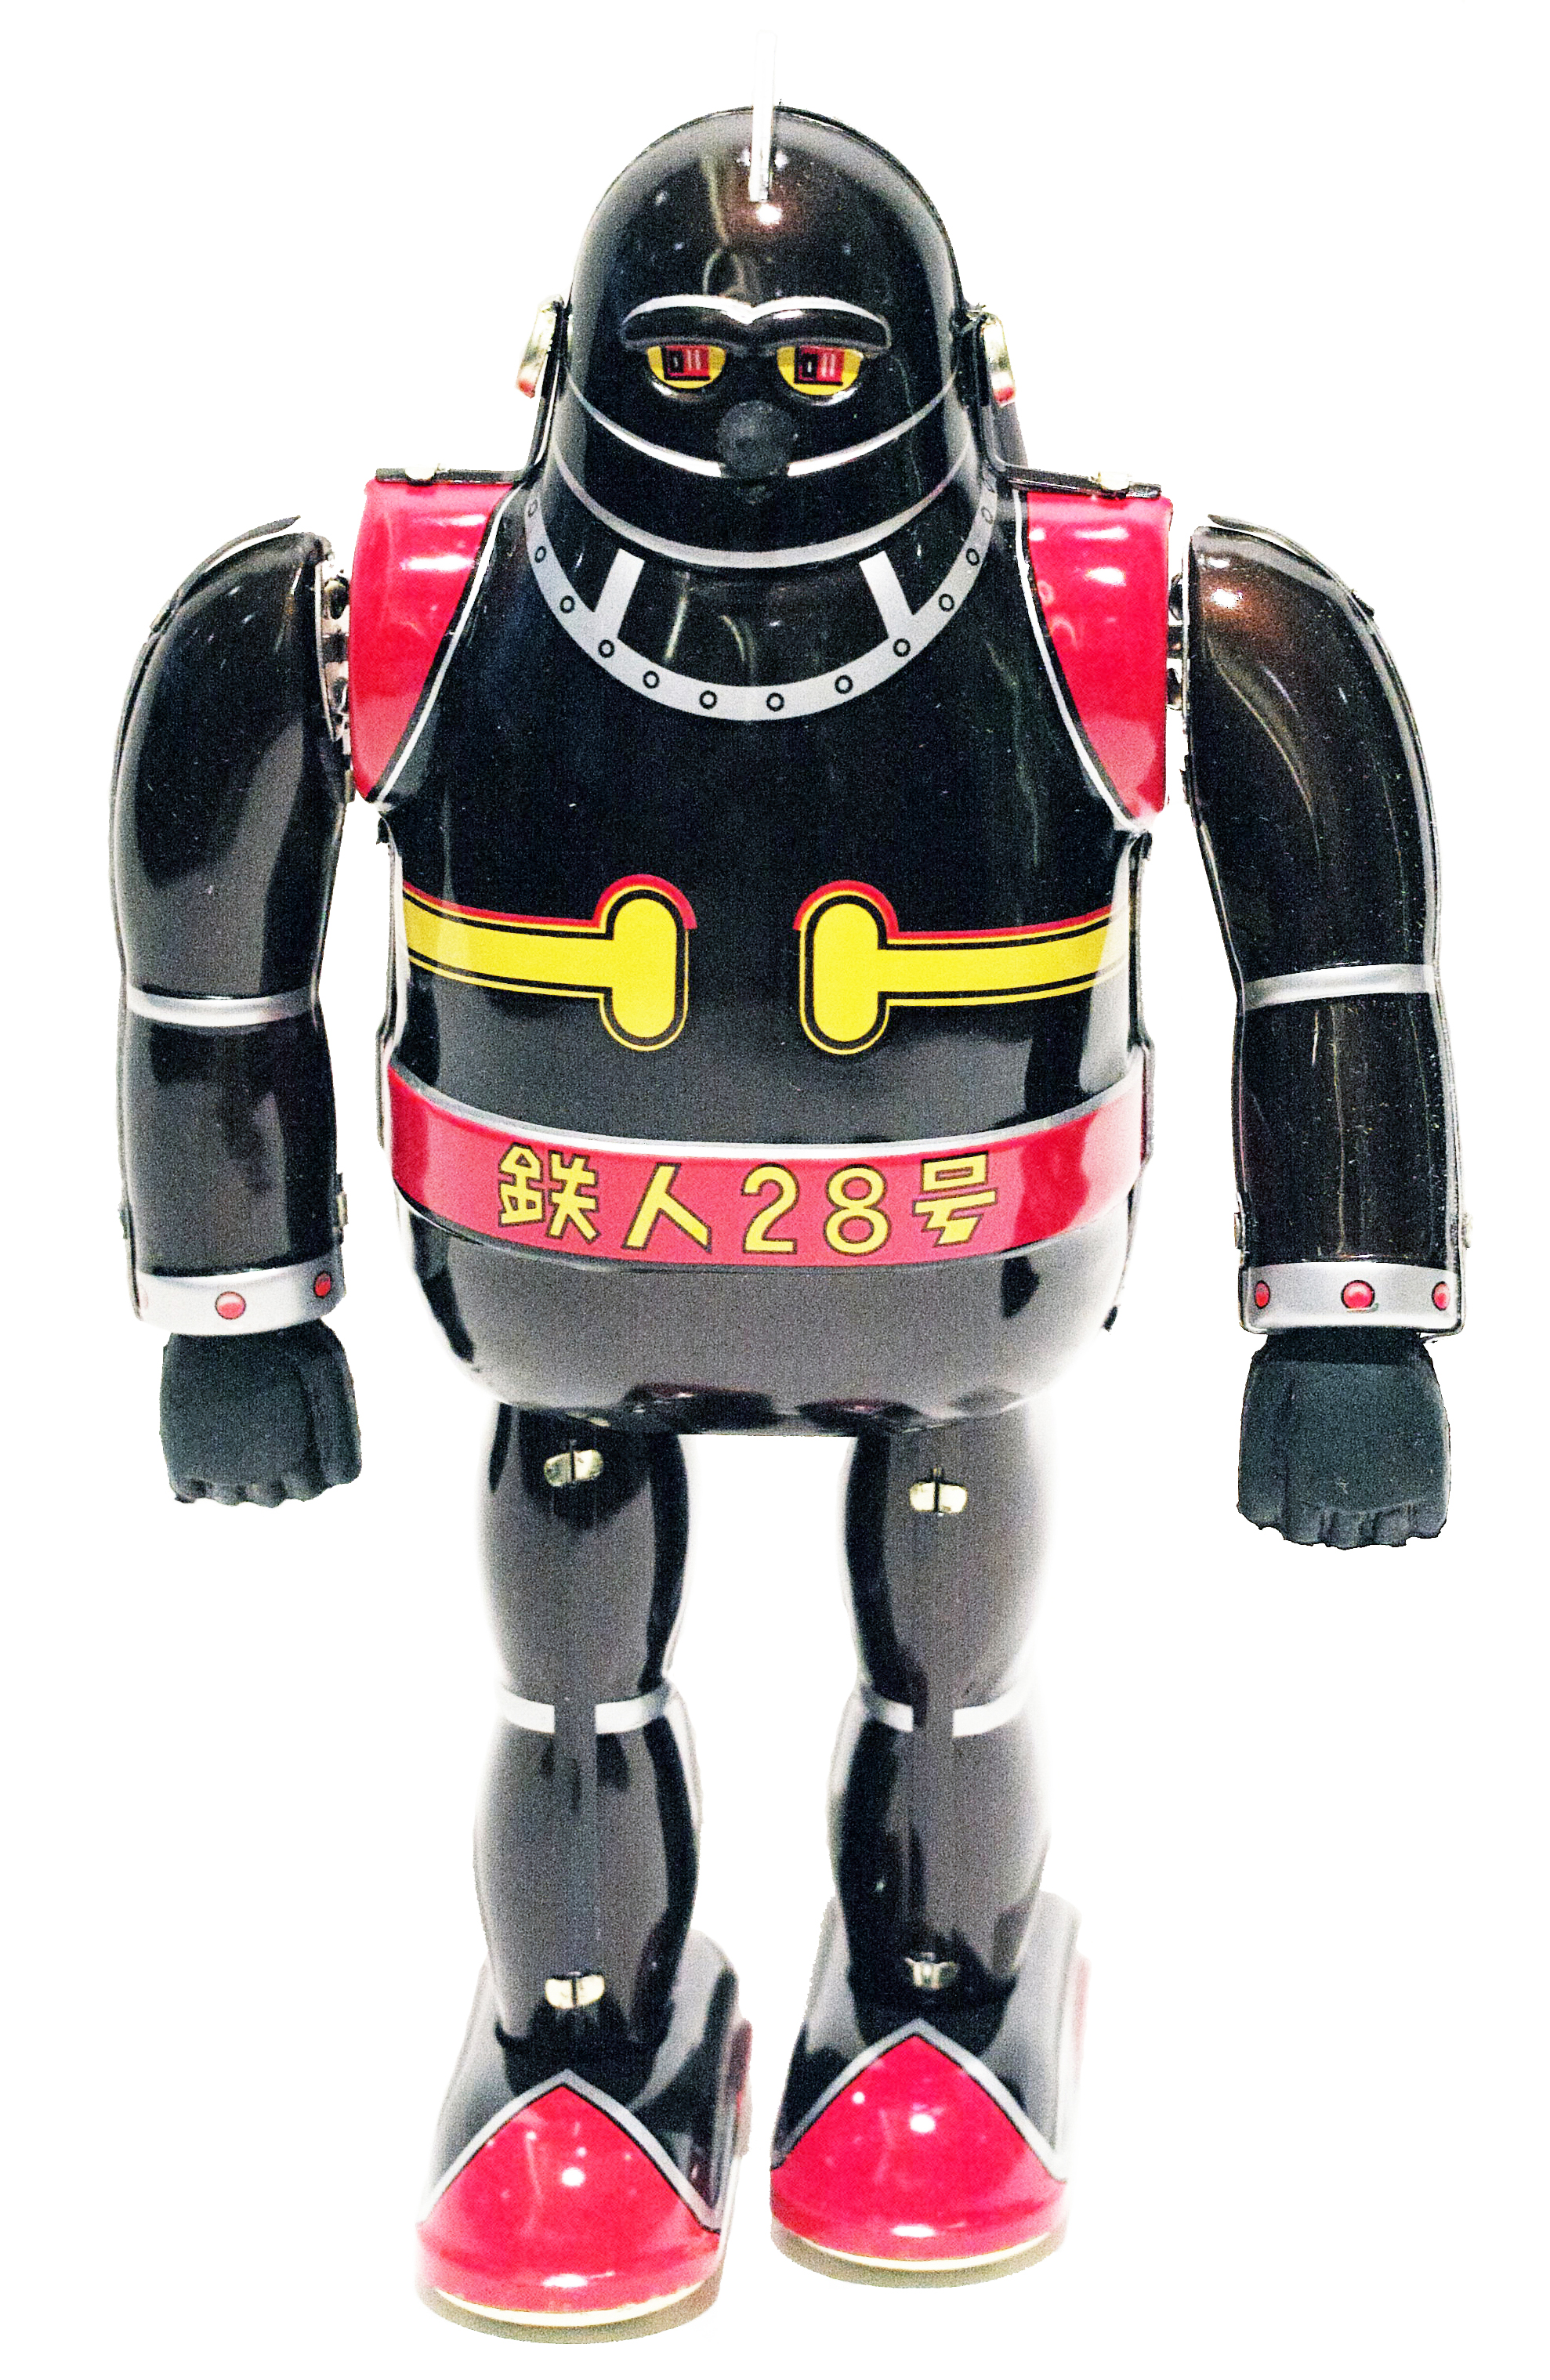 TETSUJIN 28 10TH ANNIVERSARY WIND-UP